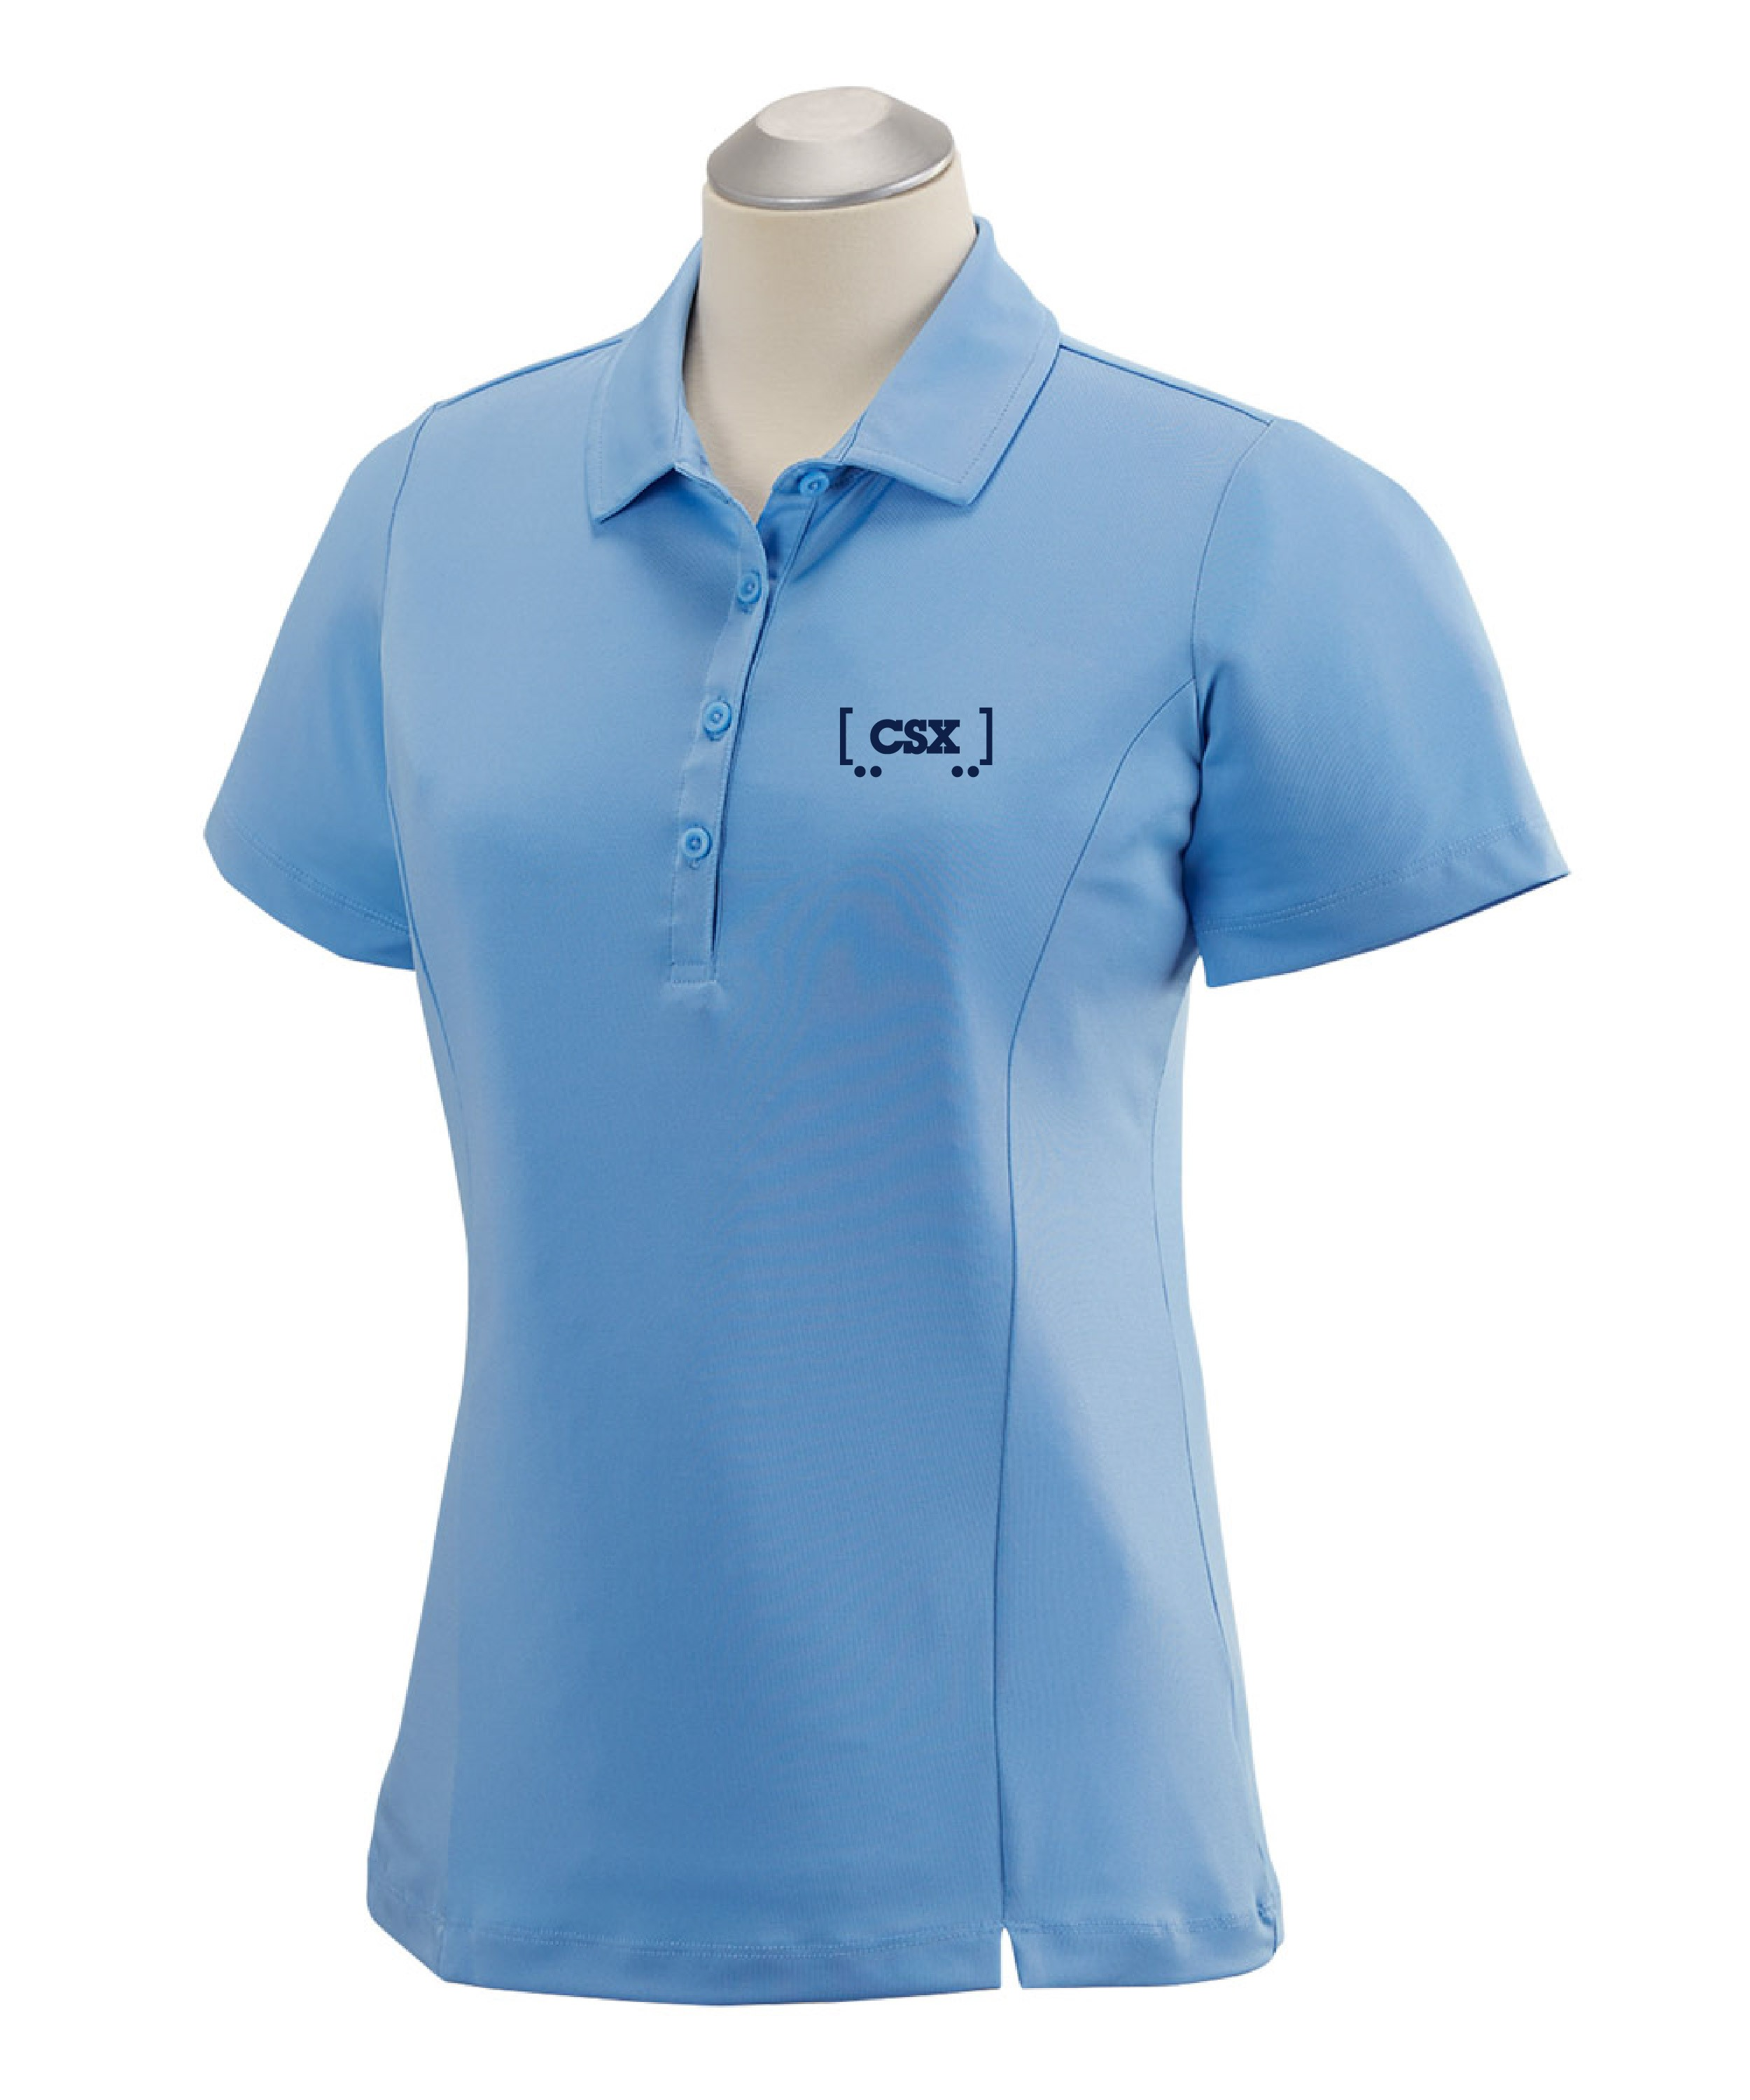 Ladies Bobby Jones Polo Shirt